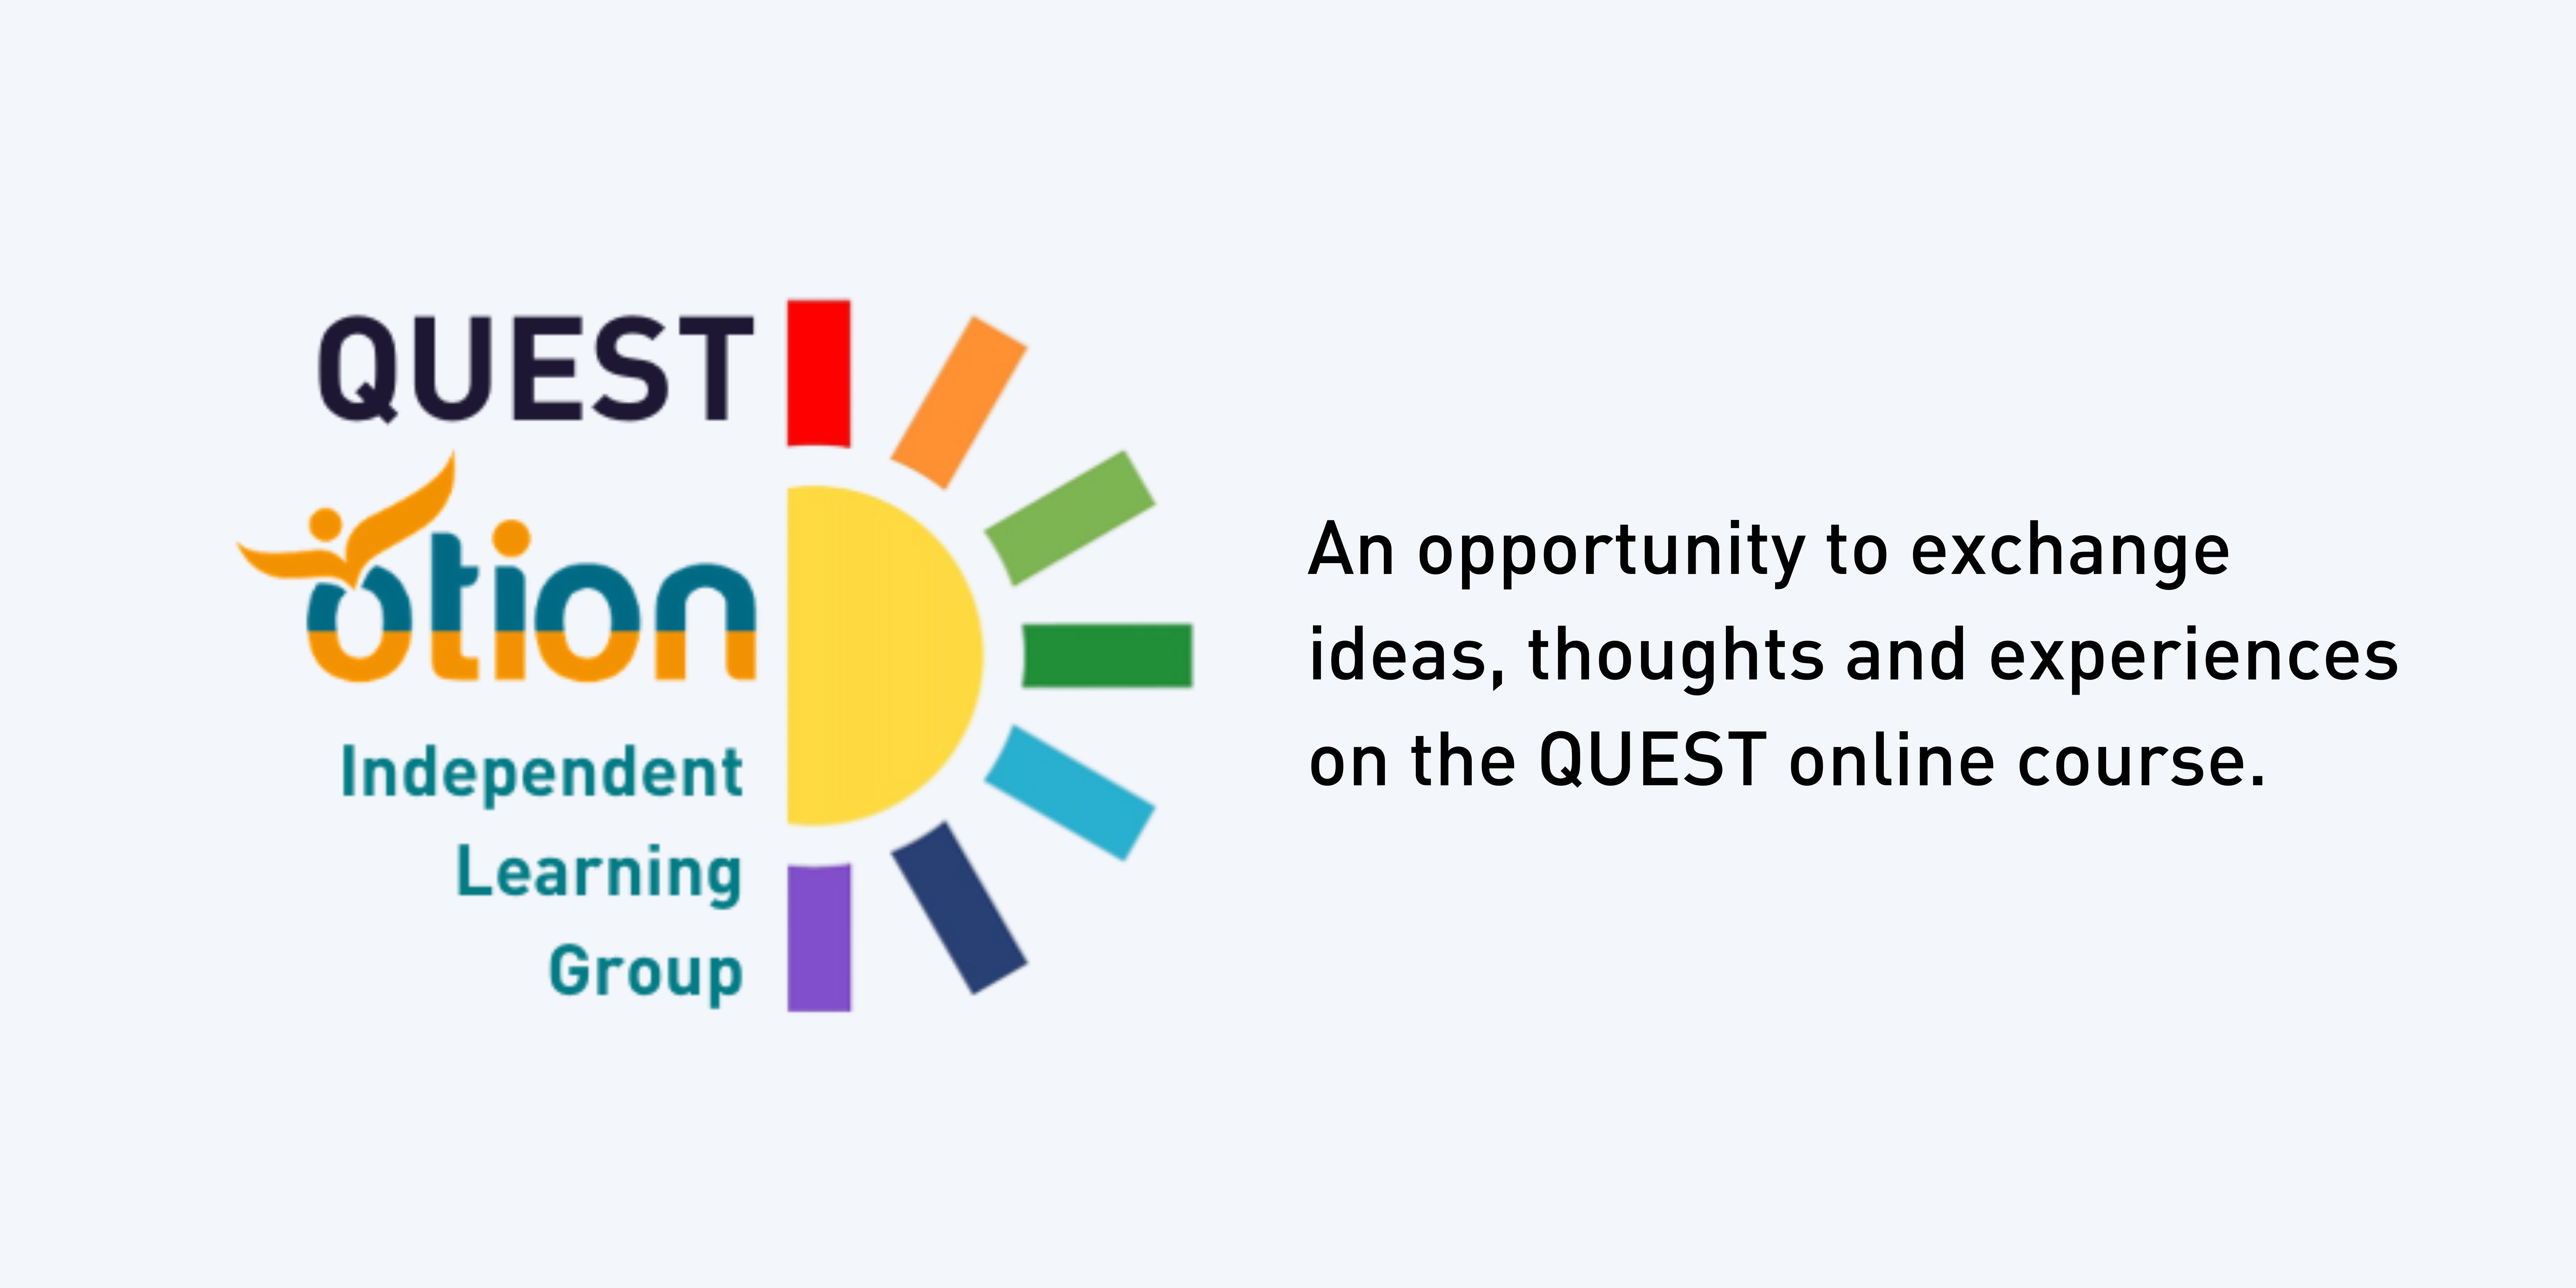 QUEST Independent Learning Group